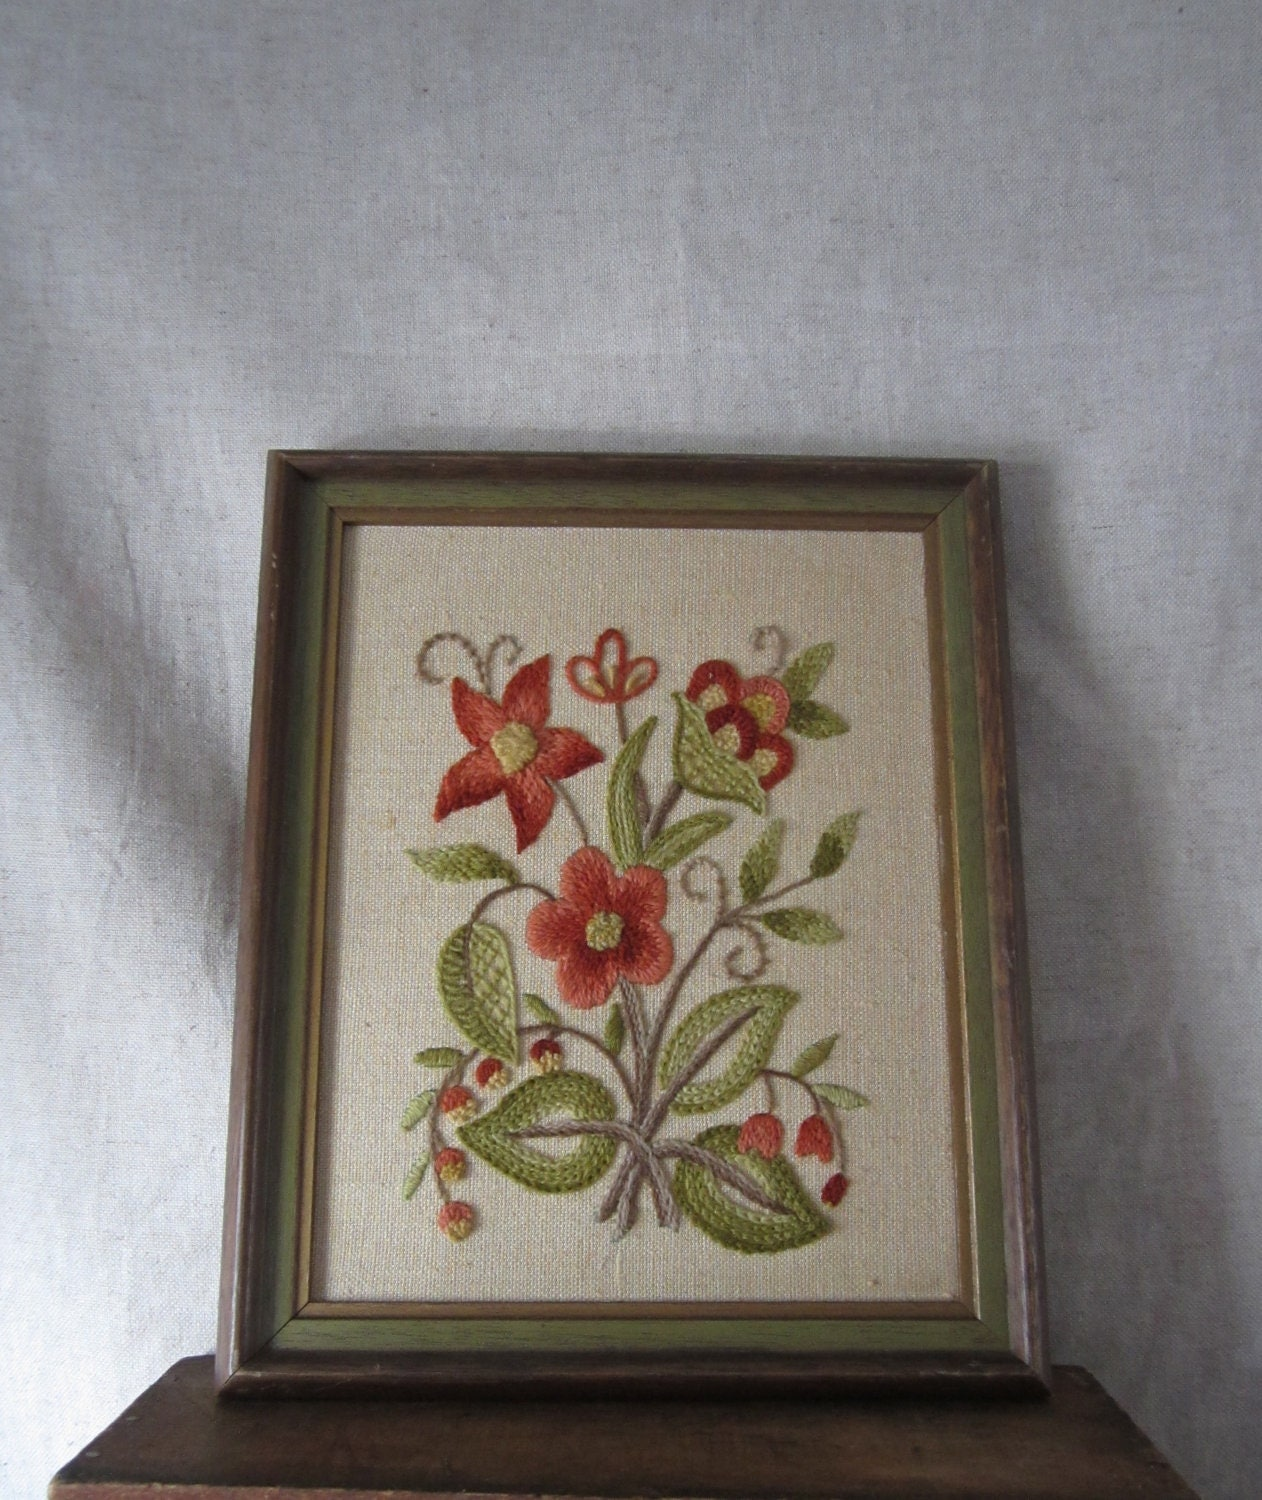 Framed Embroidery Floral Art Still Life Flowes By